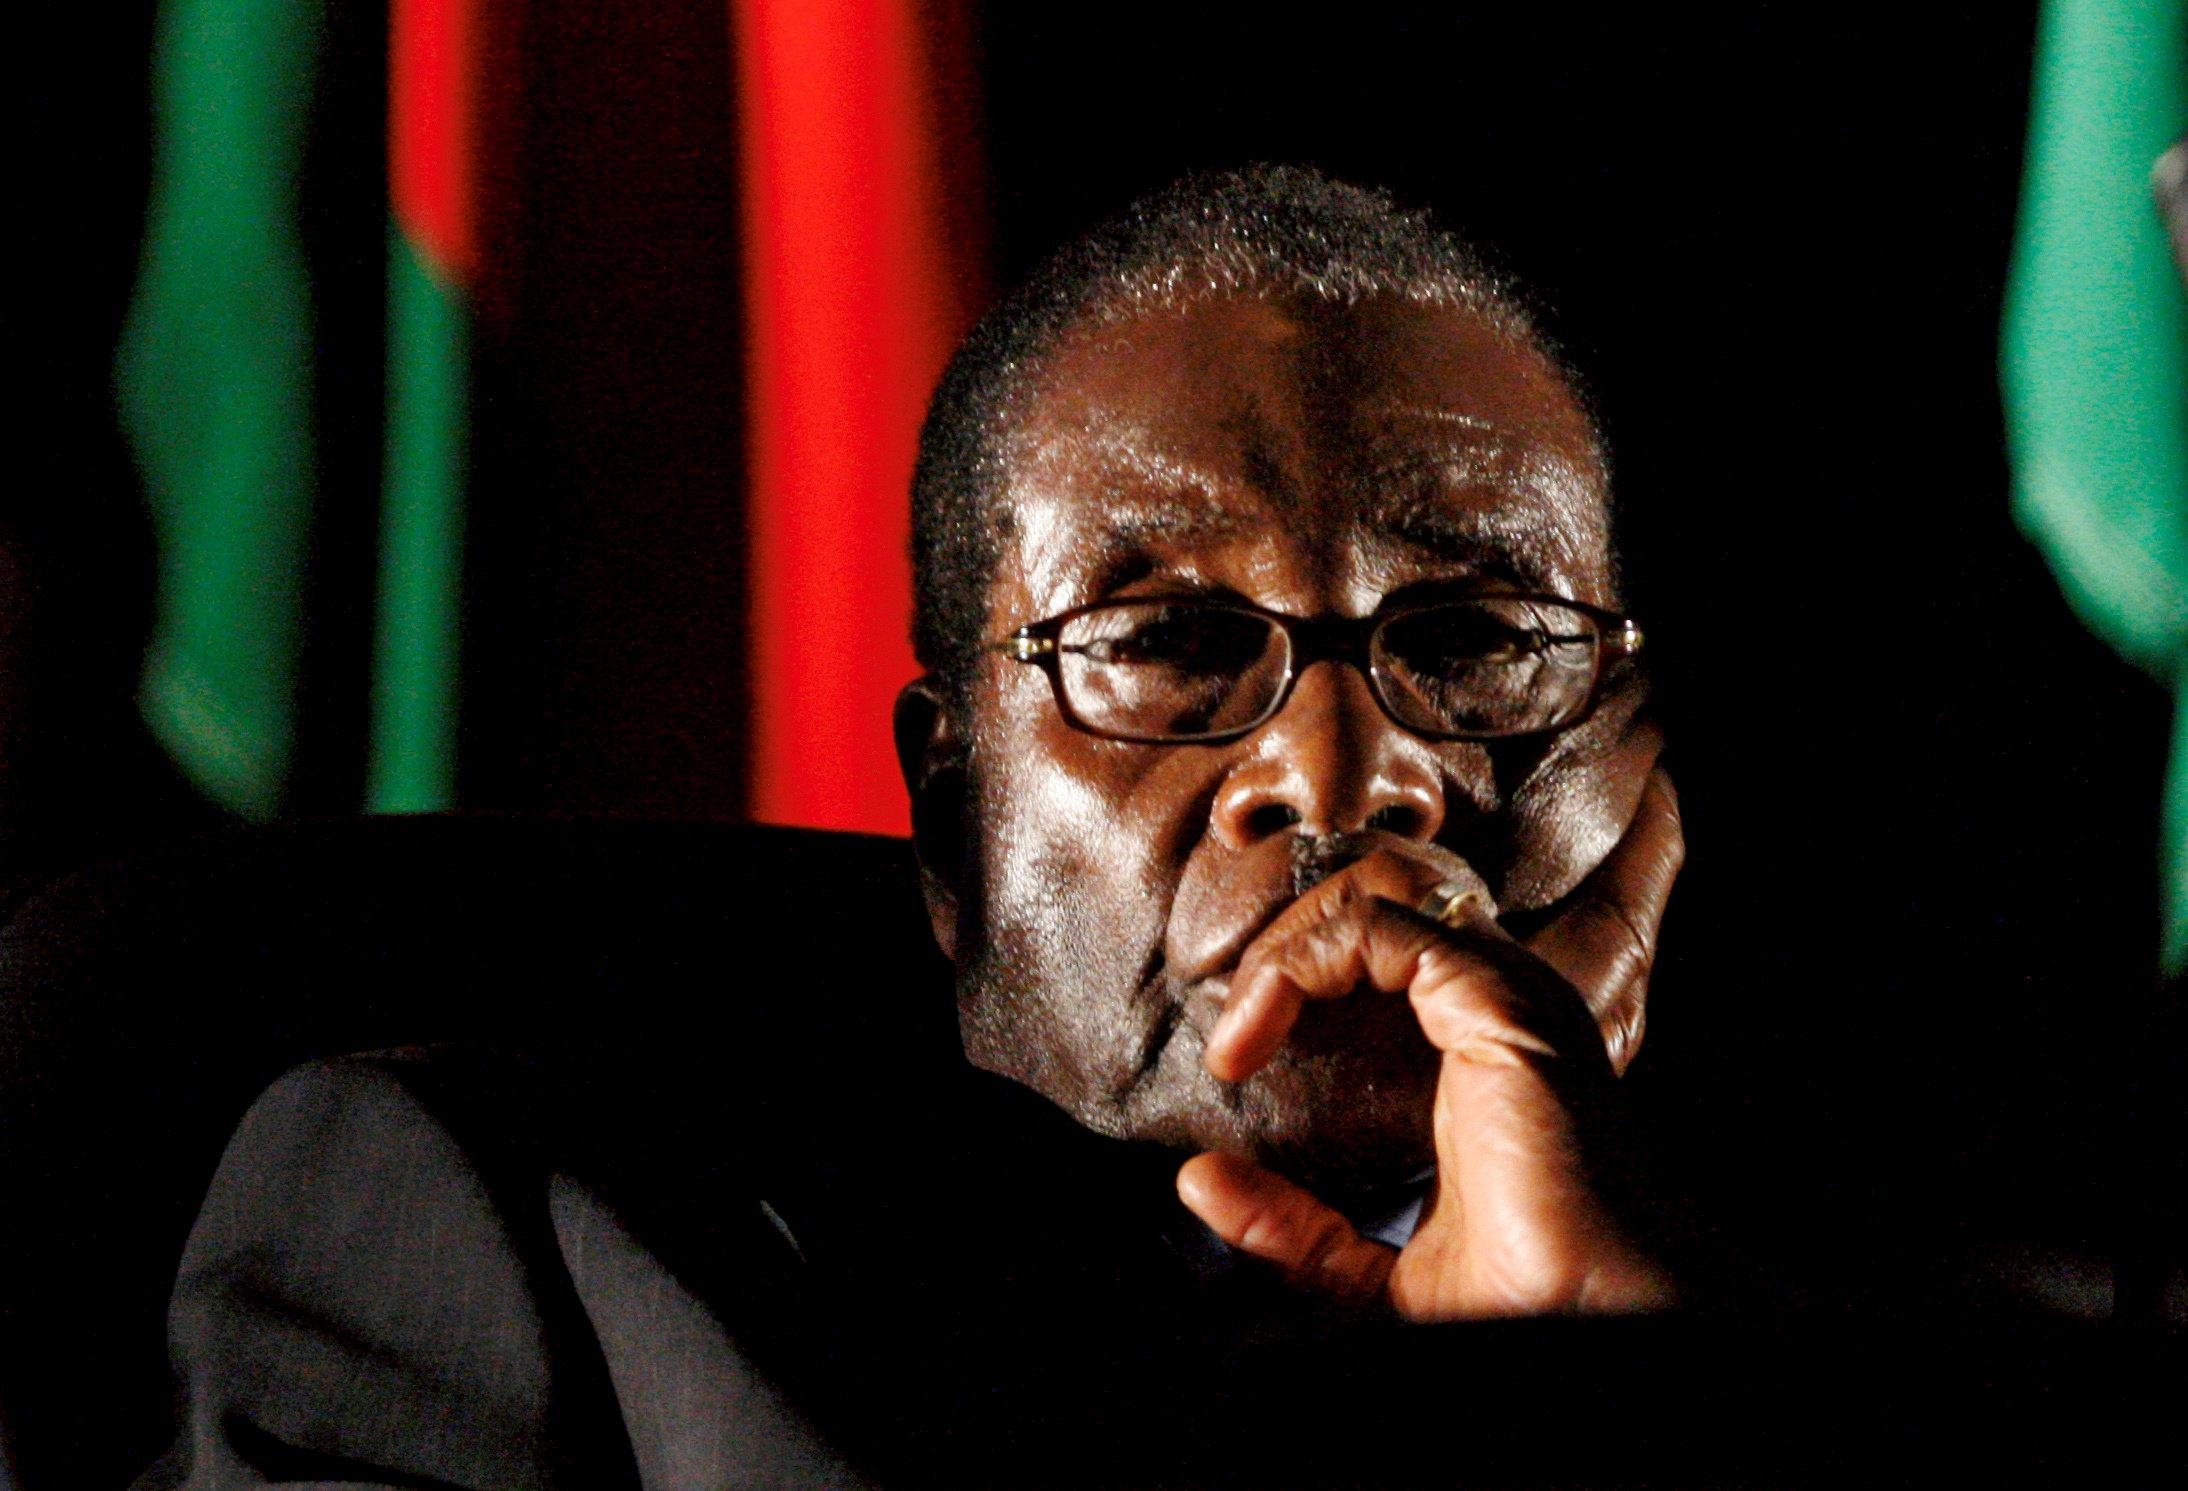 Zimbabwean President Robert Mugabe watches a video presentation during the summit of the Southern African Development Community (SADC) in Johannesburg, South Africa August 17, 2008. Mike Hutchings